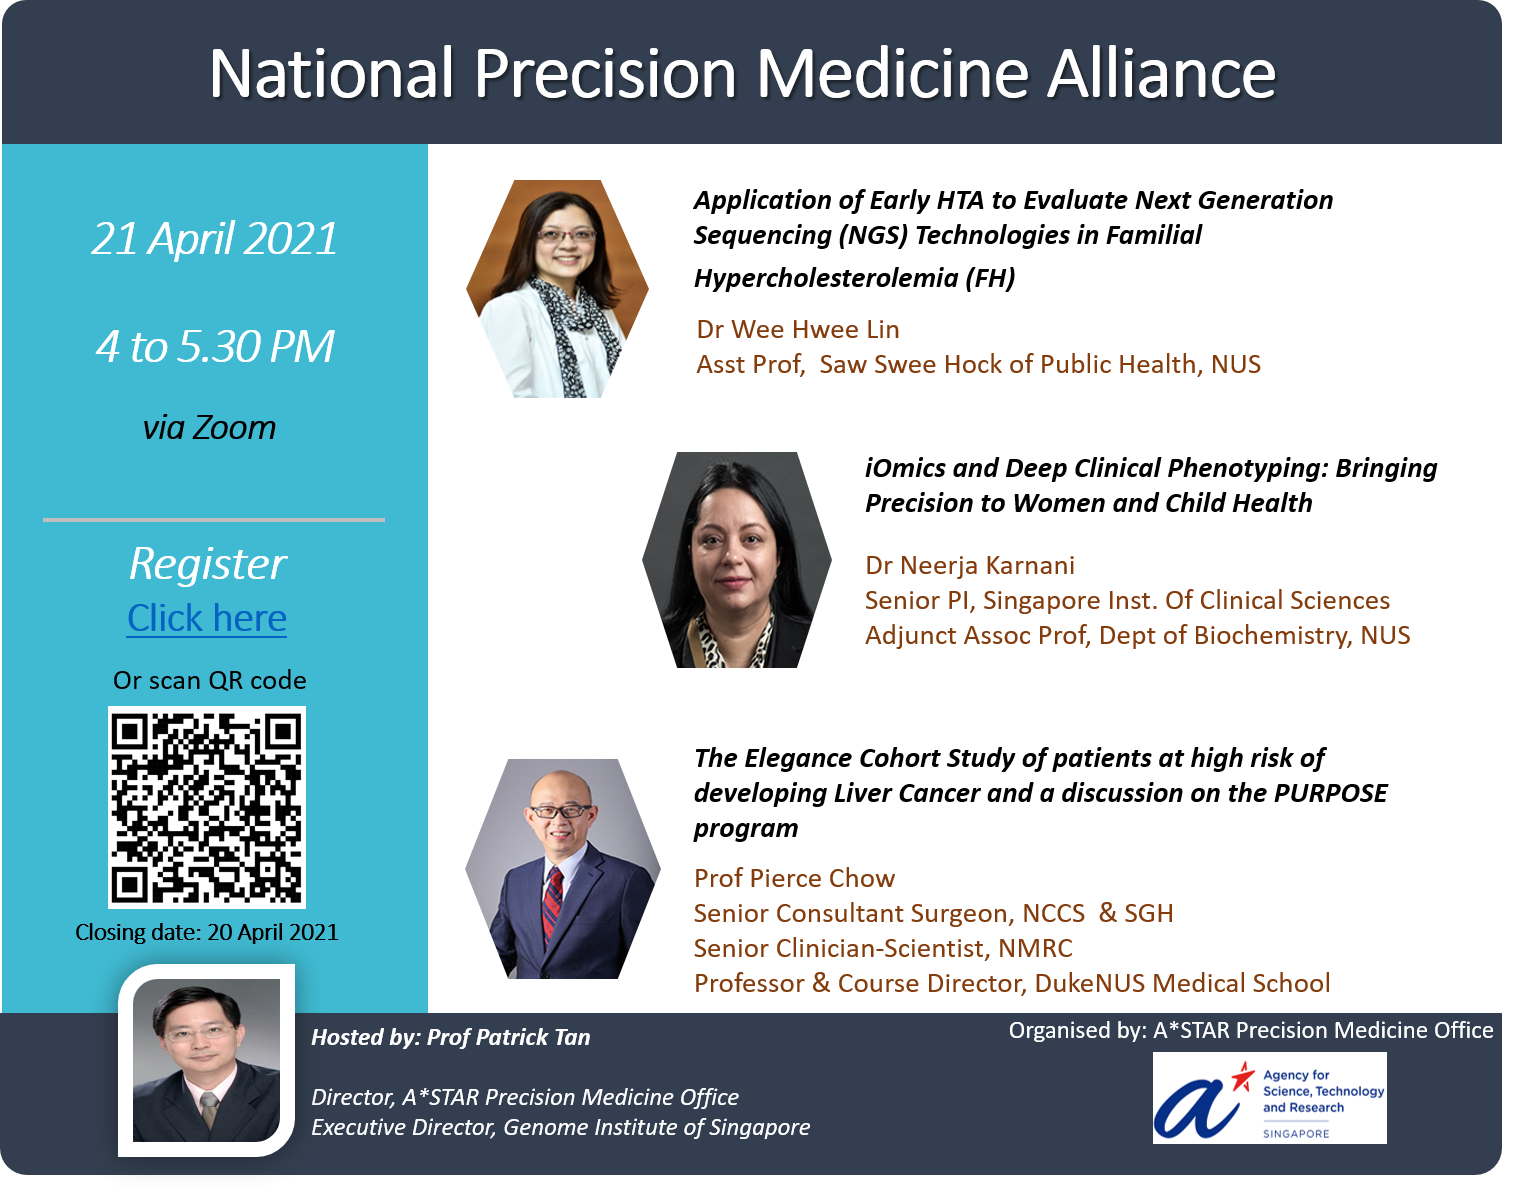 National Precision Medicine Alliance Meeting